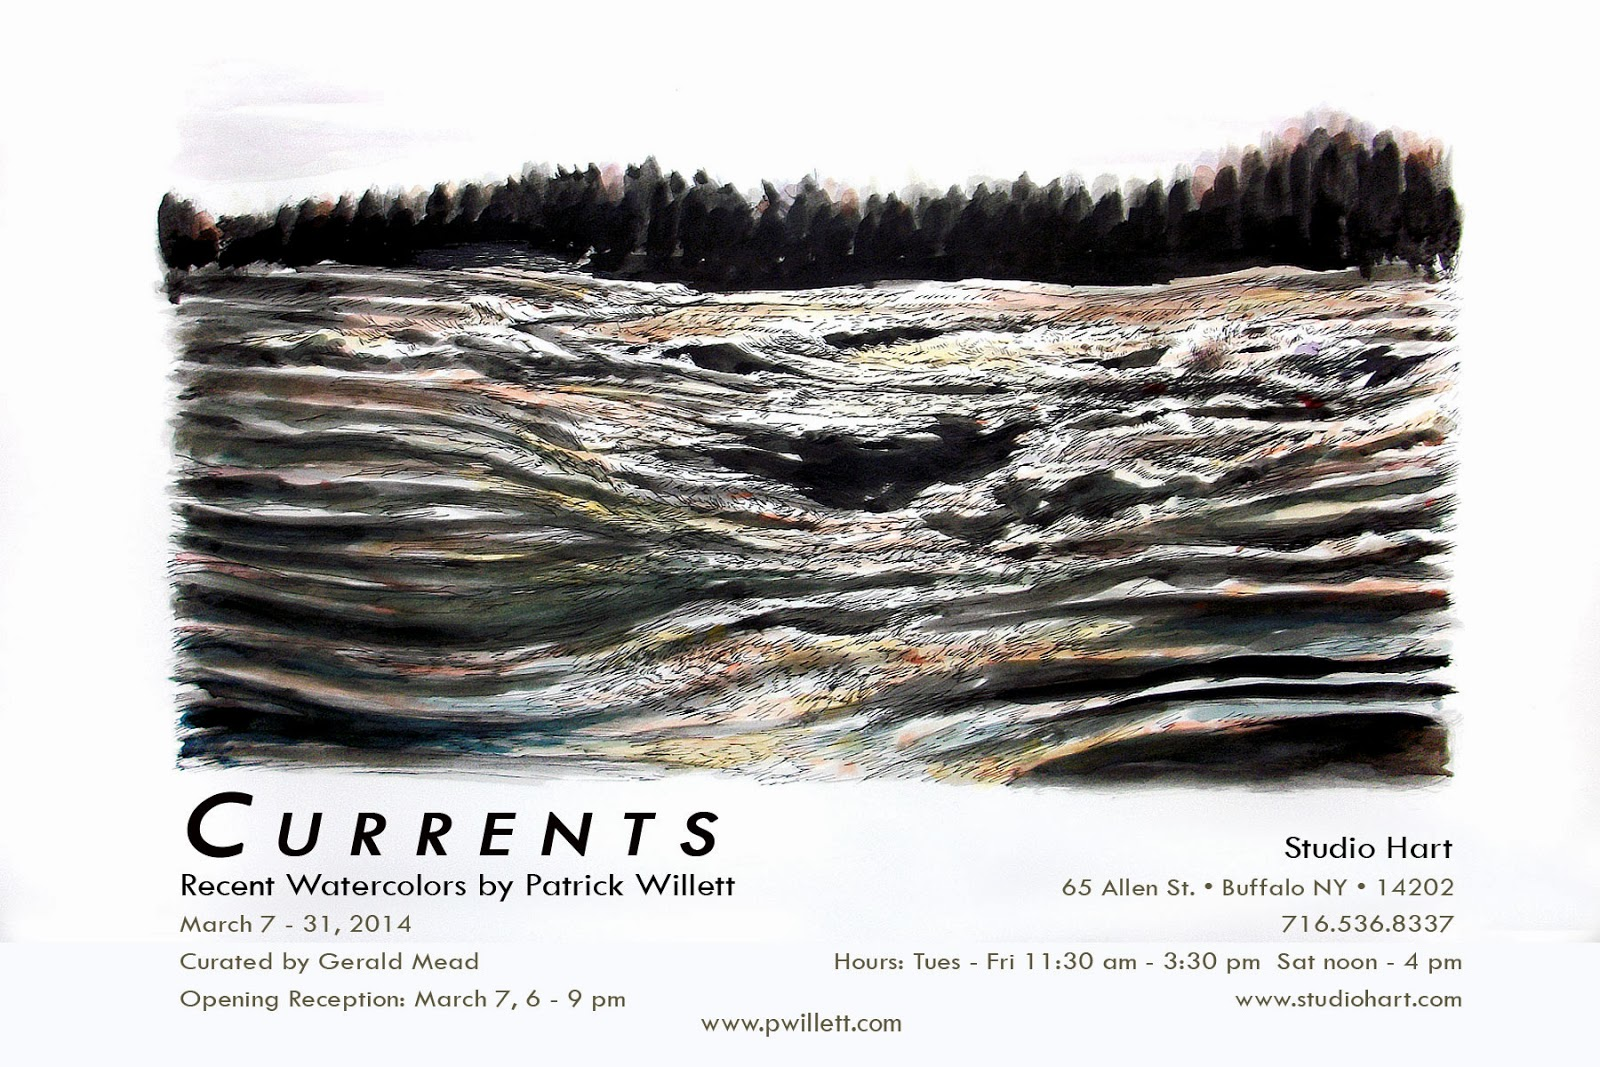 Currents, New Work by Patrick Willett, watercolor painting, Studio Hart, Allentown first fridays, Albright Knox, Burchfield Penney Art Center